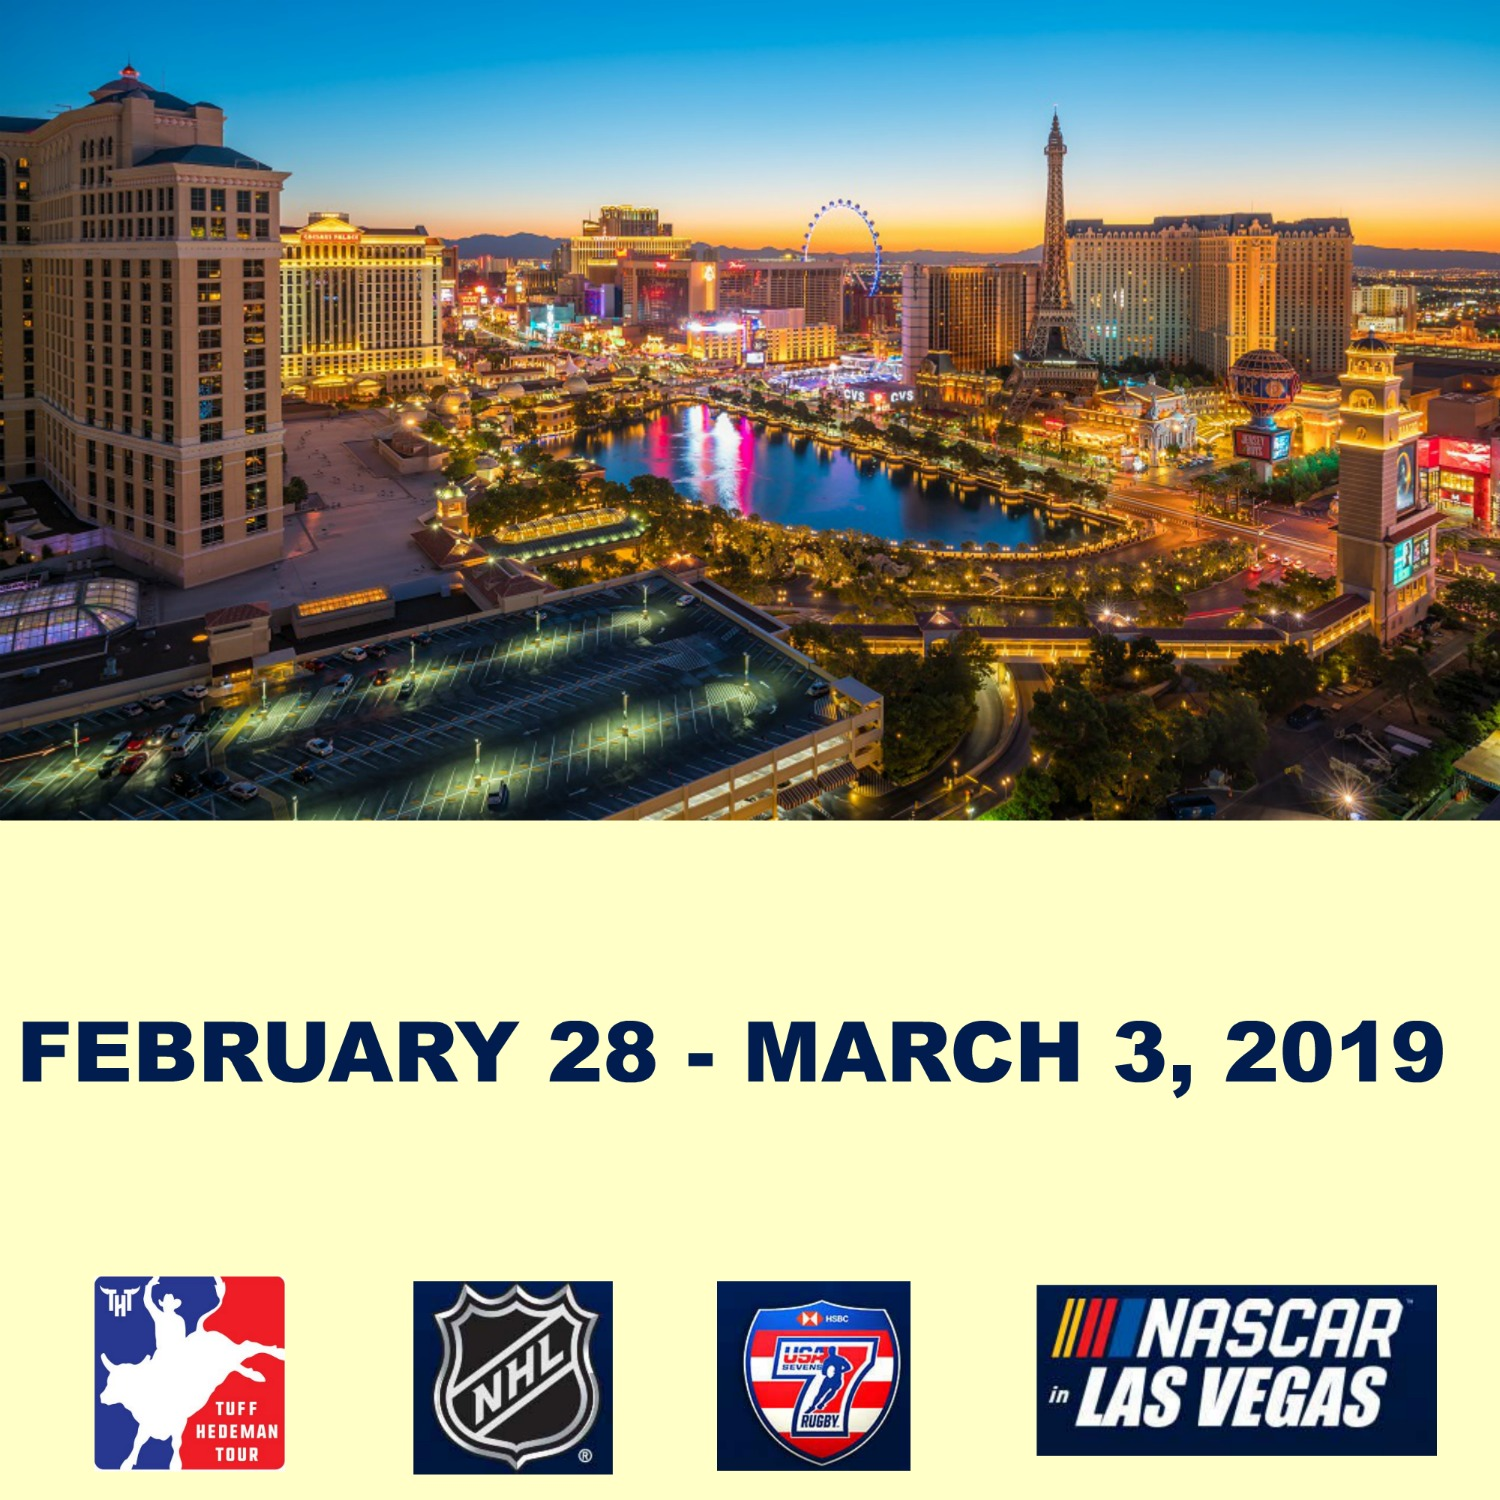 A%20guide%20to%20the%20ultimate%20vegas%20sports%20weekend